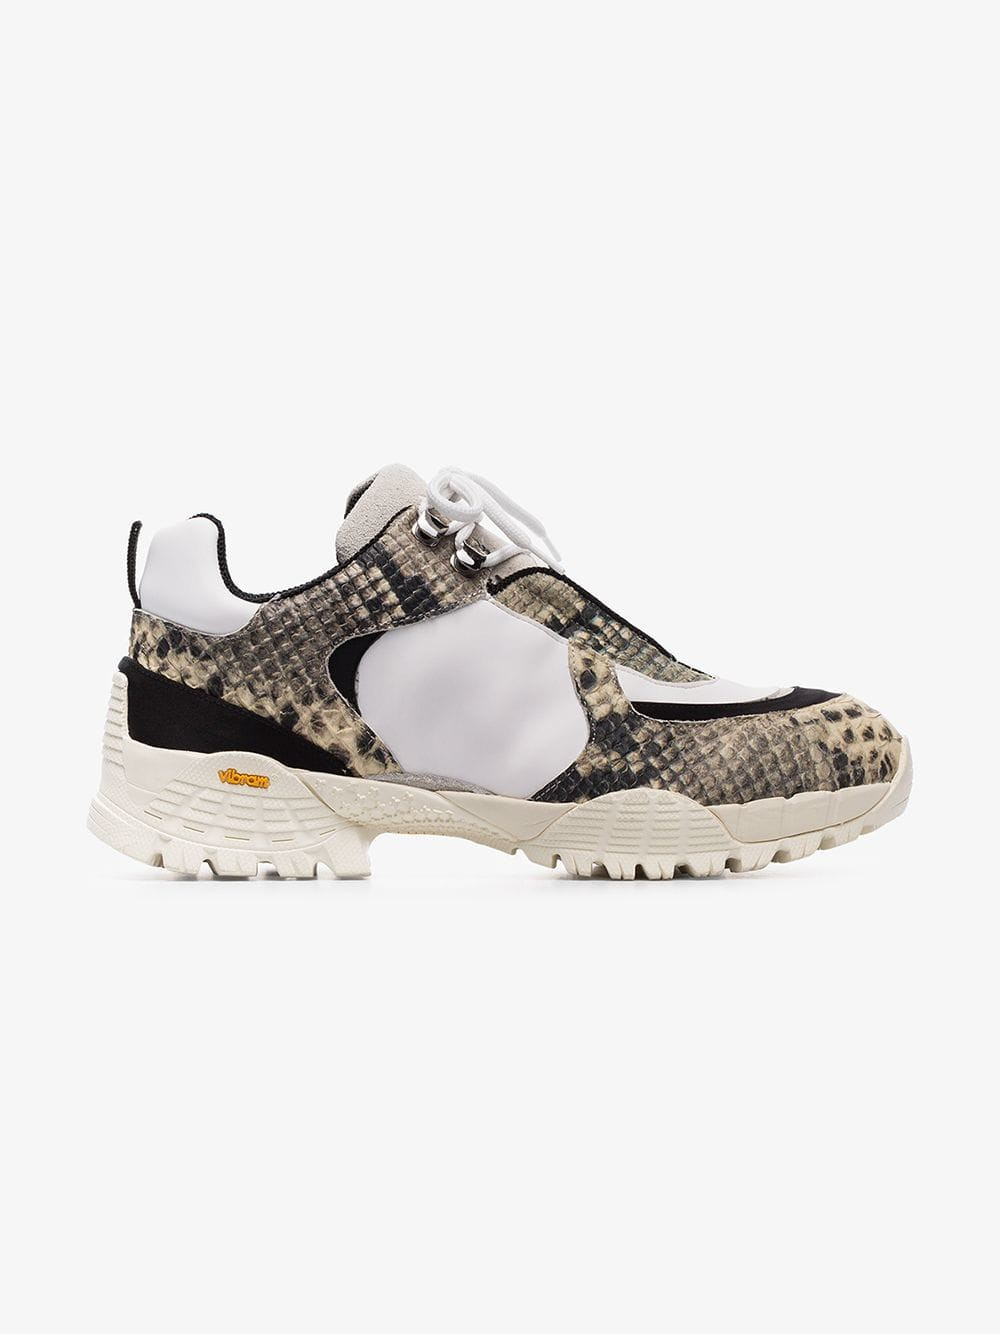 1017 ALYX 9SM snake-effect leather panelled sneakers in white